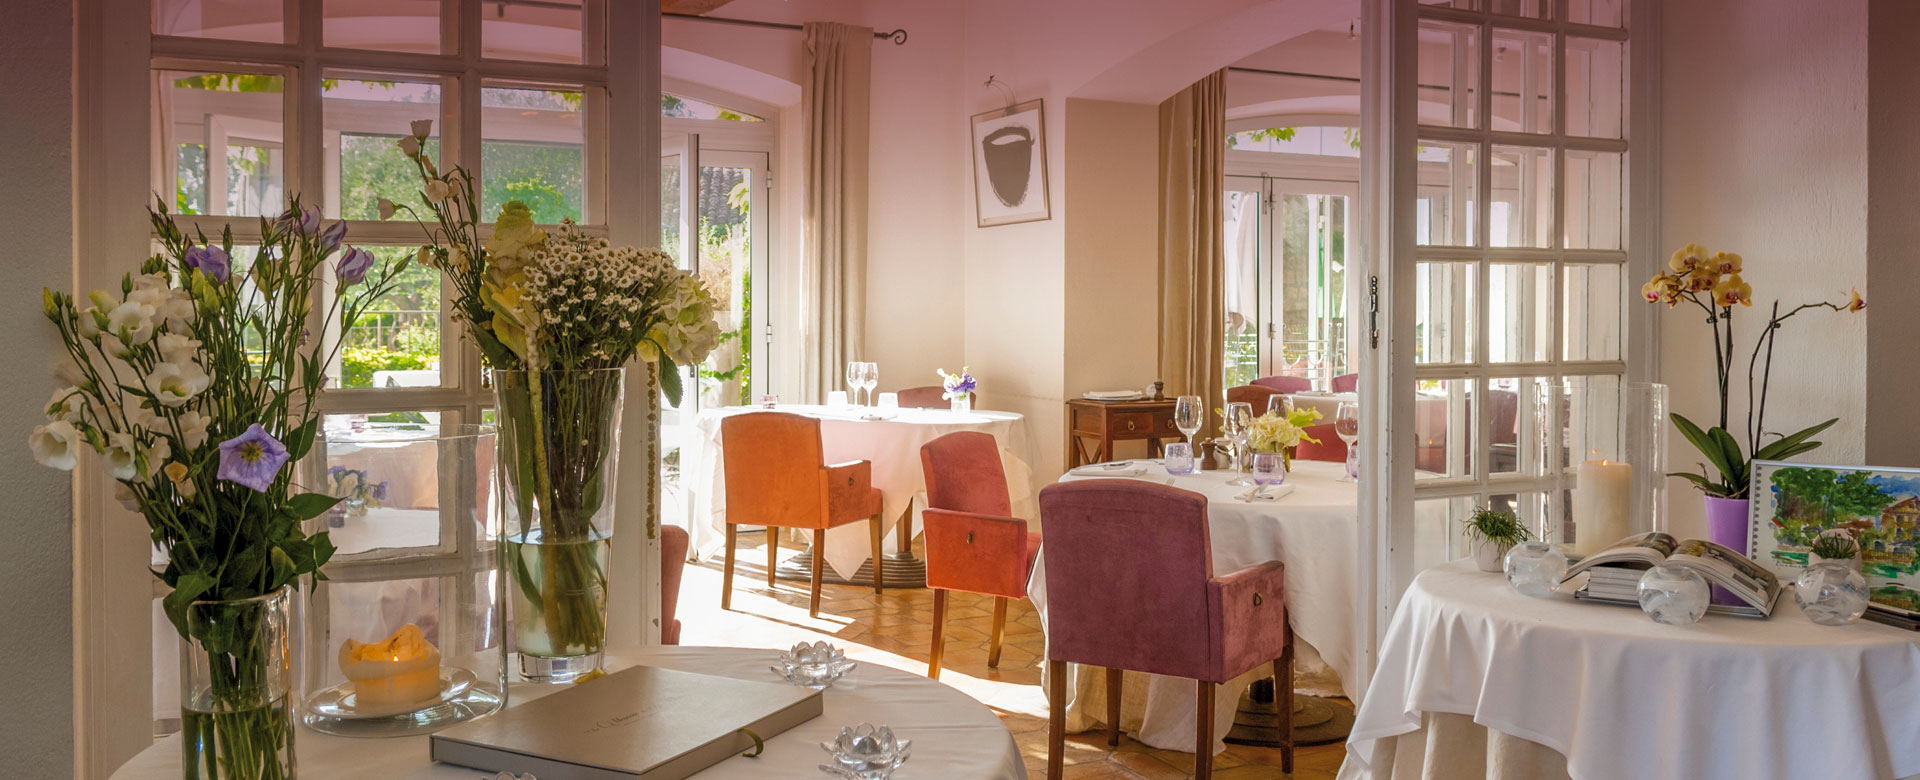 restaurant-mougins